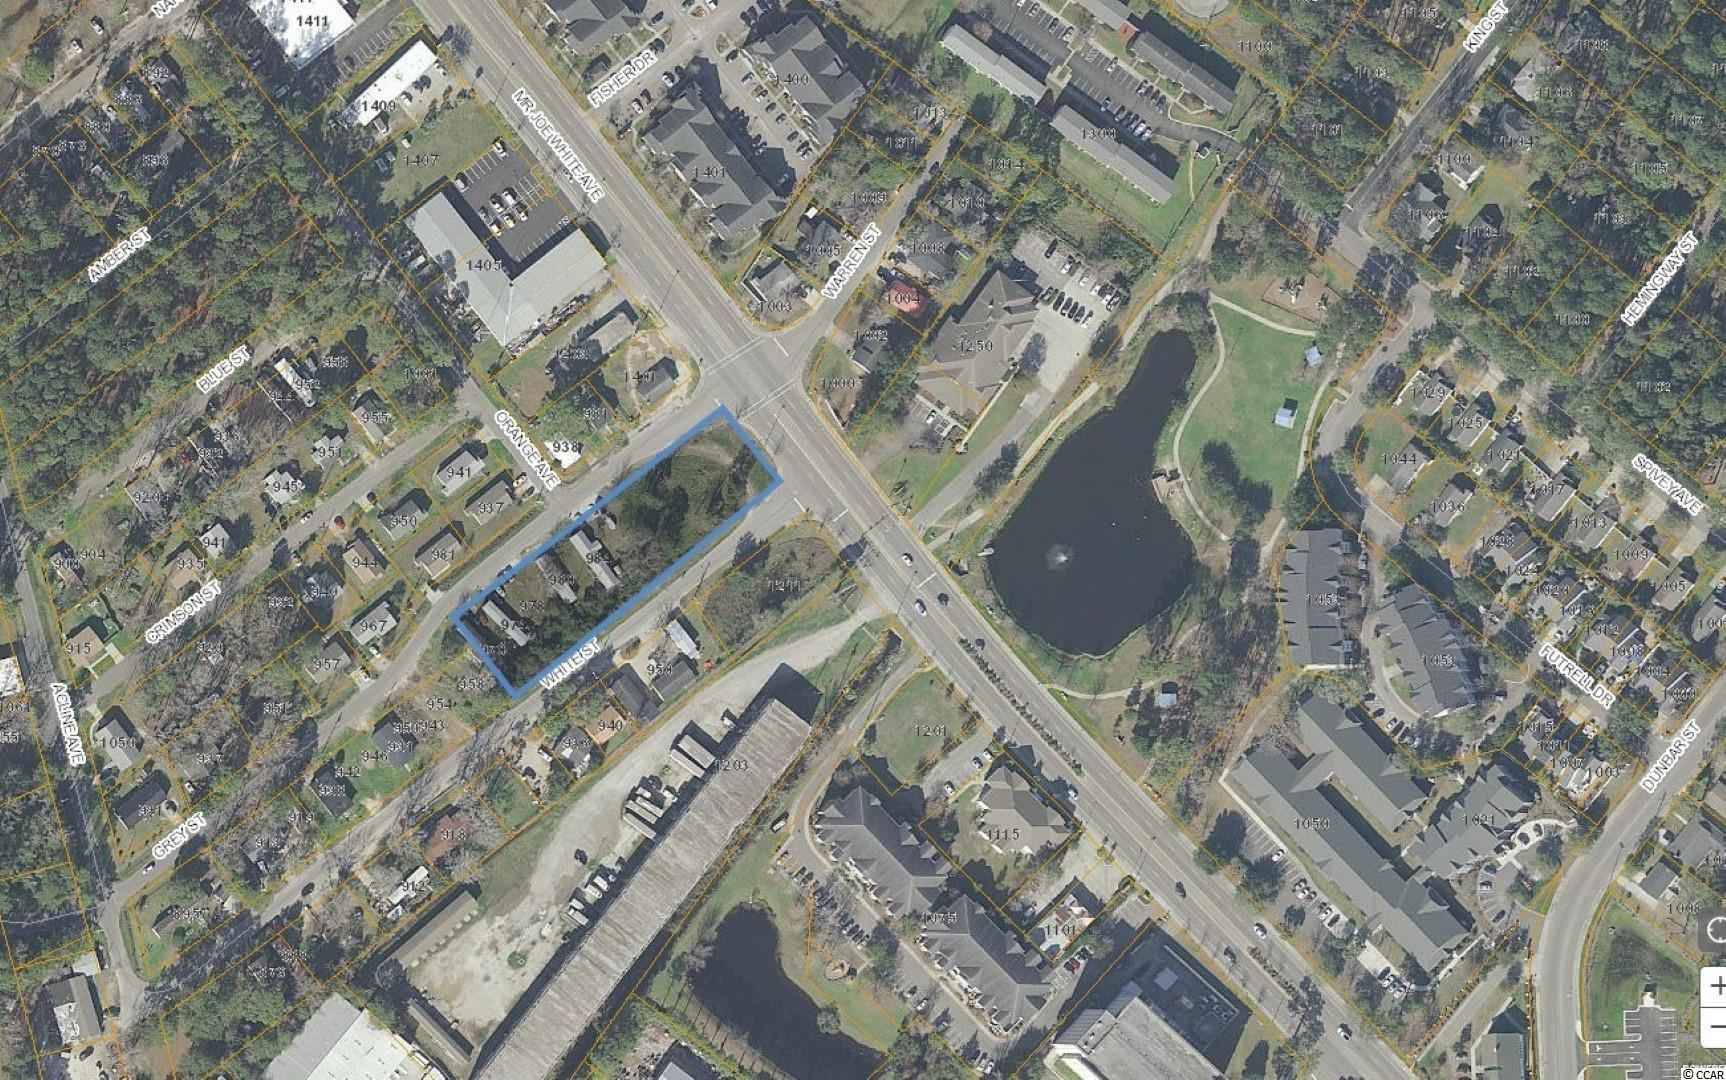 Approx. 1.13 acre with 120' frontage on 10th Ave N. Located within city limits of Myrtle Beach in an Opportunity Zone.  Zoning is MU-M (Mixed Use Medium Density) on the front portion of the property and RMM (Multi-Family Residential, Medium Density) on the rear portion of the property.  MU-M Zoning allows for SF & MF Residential and several Commercial Uses. RMM Zoning allows for SF & MF Residential among other uses. Site is located less than 1 mile from Atlantic Ocean and is in close proximity to retail, restaurants & entertainment. Measurements are approximate and not guaranteed. Buyer responsible for verification.